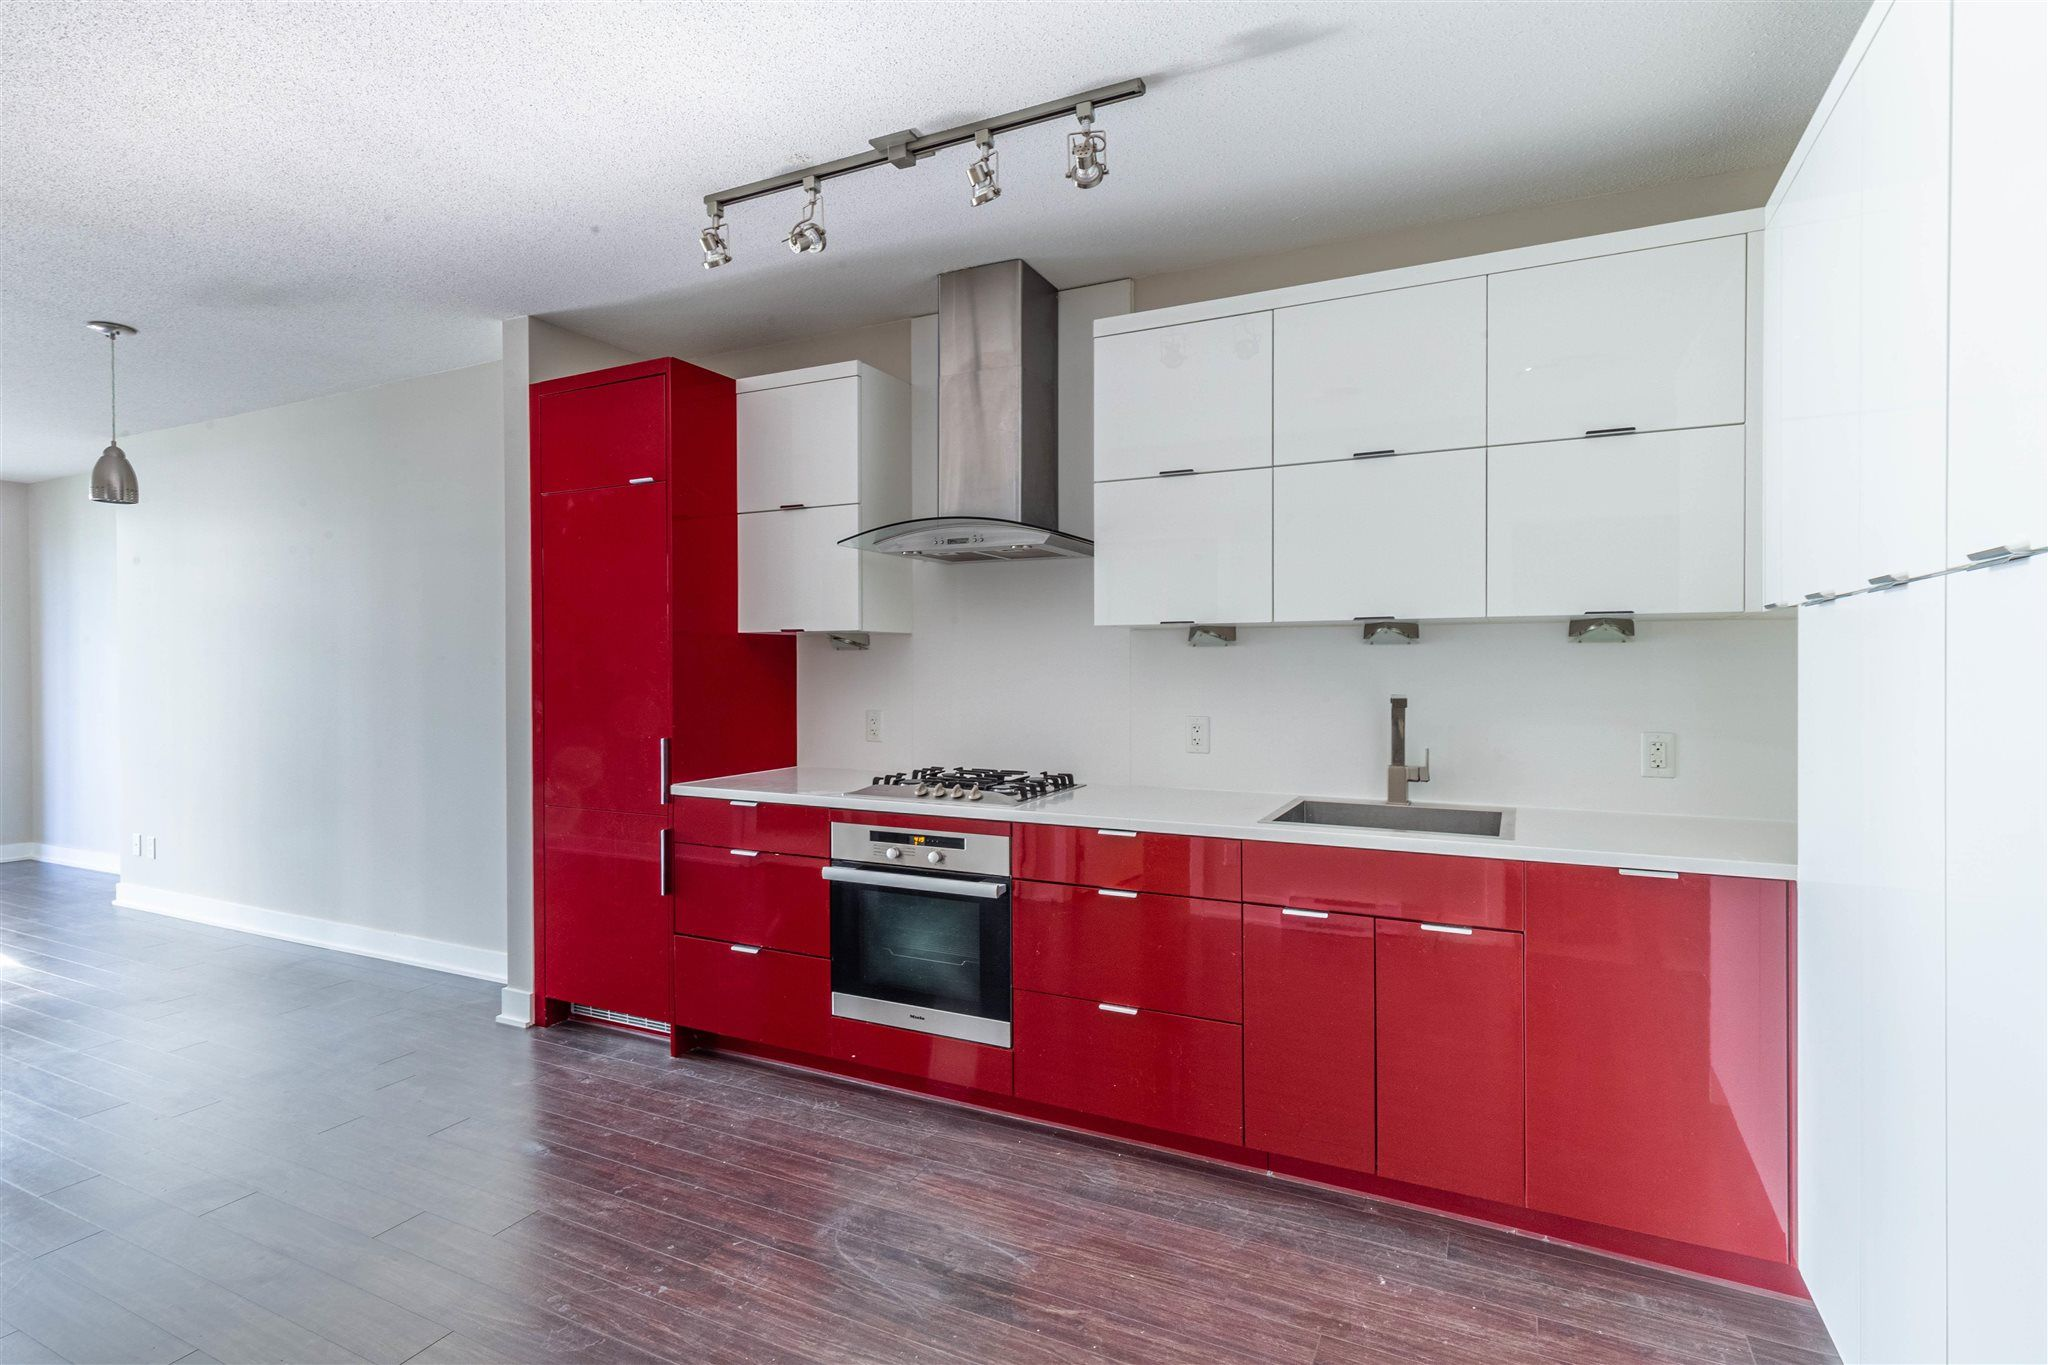 """Photo 5: Photos: 235 1777 W 7TH Avenue in Vancouver: Fairview VW Condo for sale in """"KITS 360"""" (Vancouver West)  : MLS®# R2607032"""